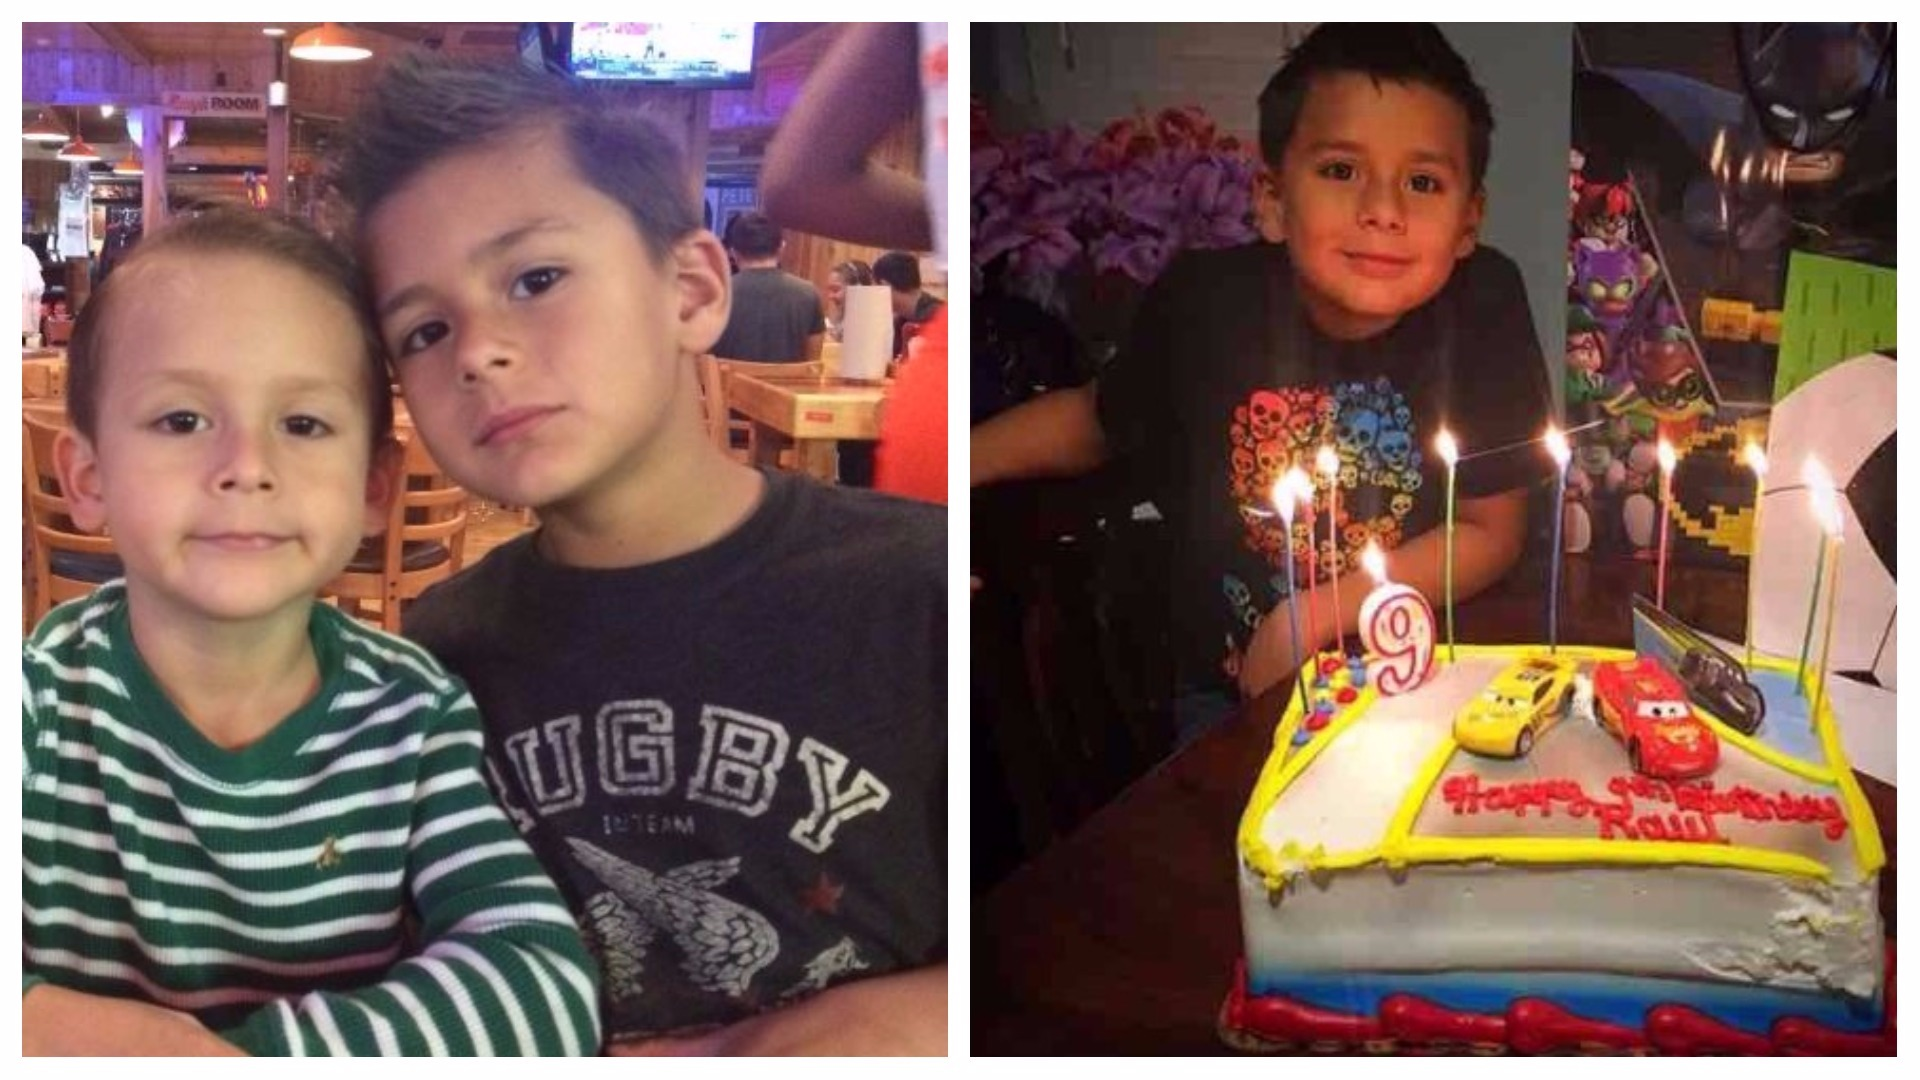 The family of Raul Gamboa, a 9-year old boy who died in a crash Monday morning in the southeast Las Vegas valley, remember him as special child who made everyone smile. (Photos provided)